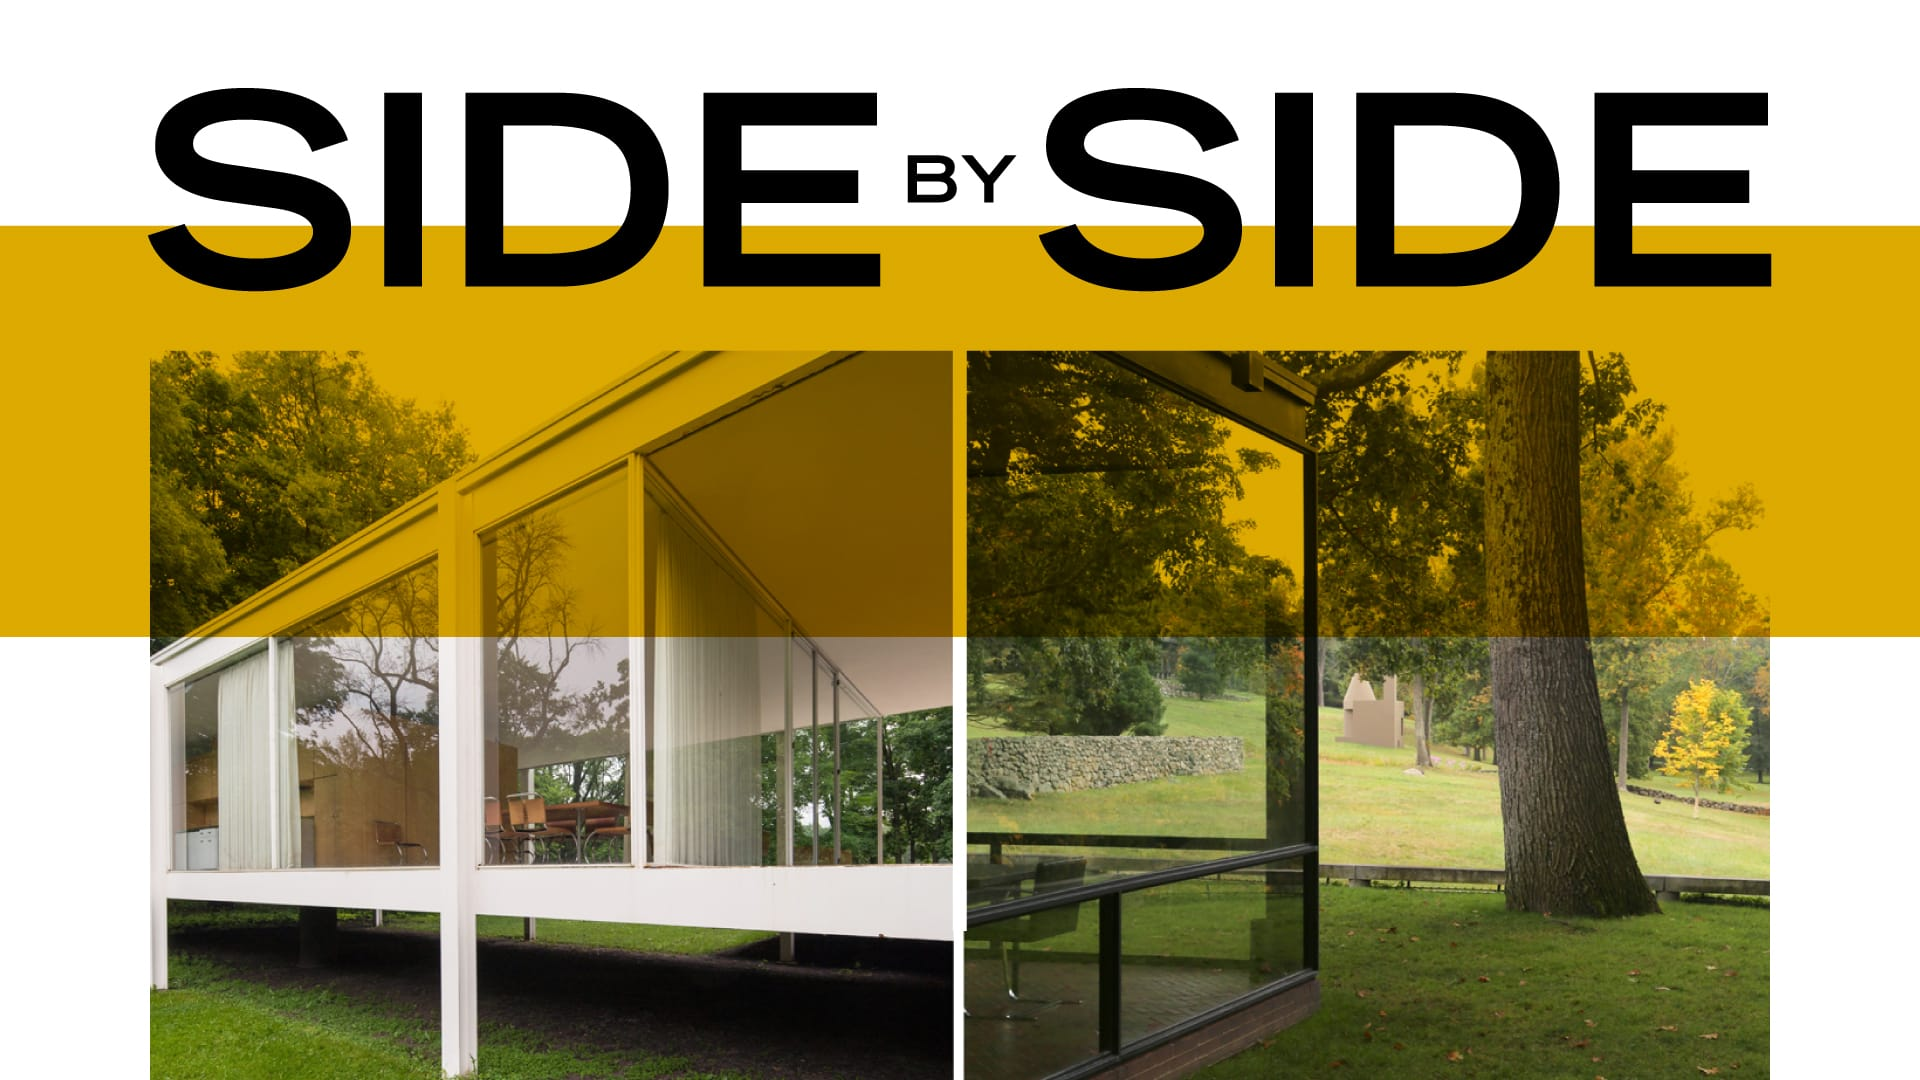 Side by Side: Farnsworth House and the Philip Johnson Glass House